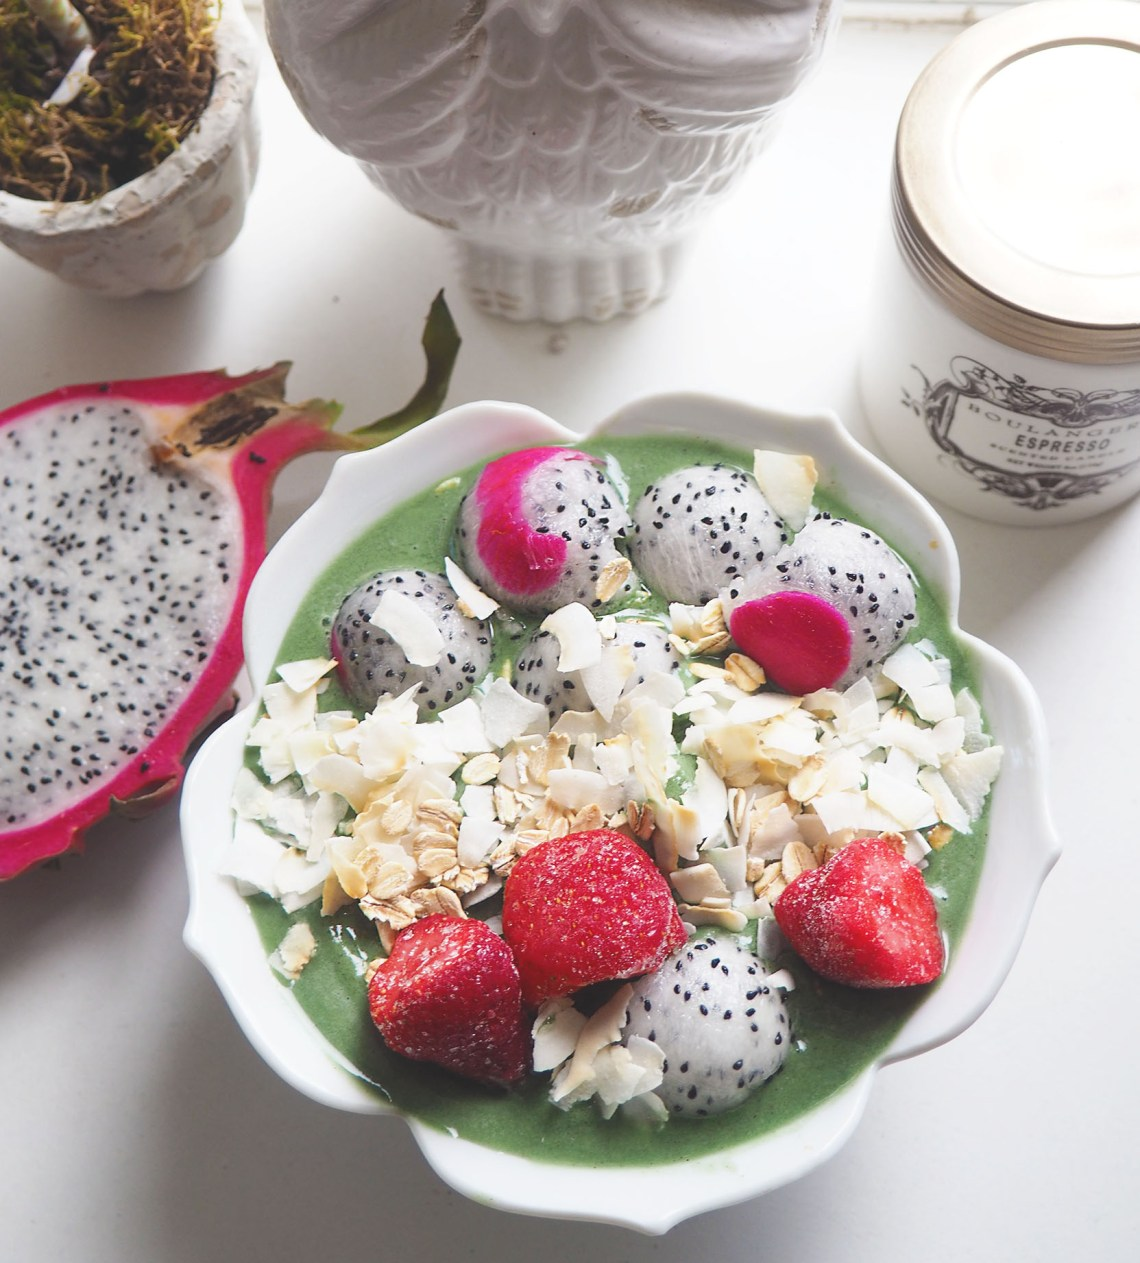 Mermaid Smoothie Bowl Inspired By Bali